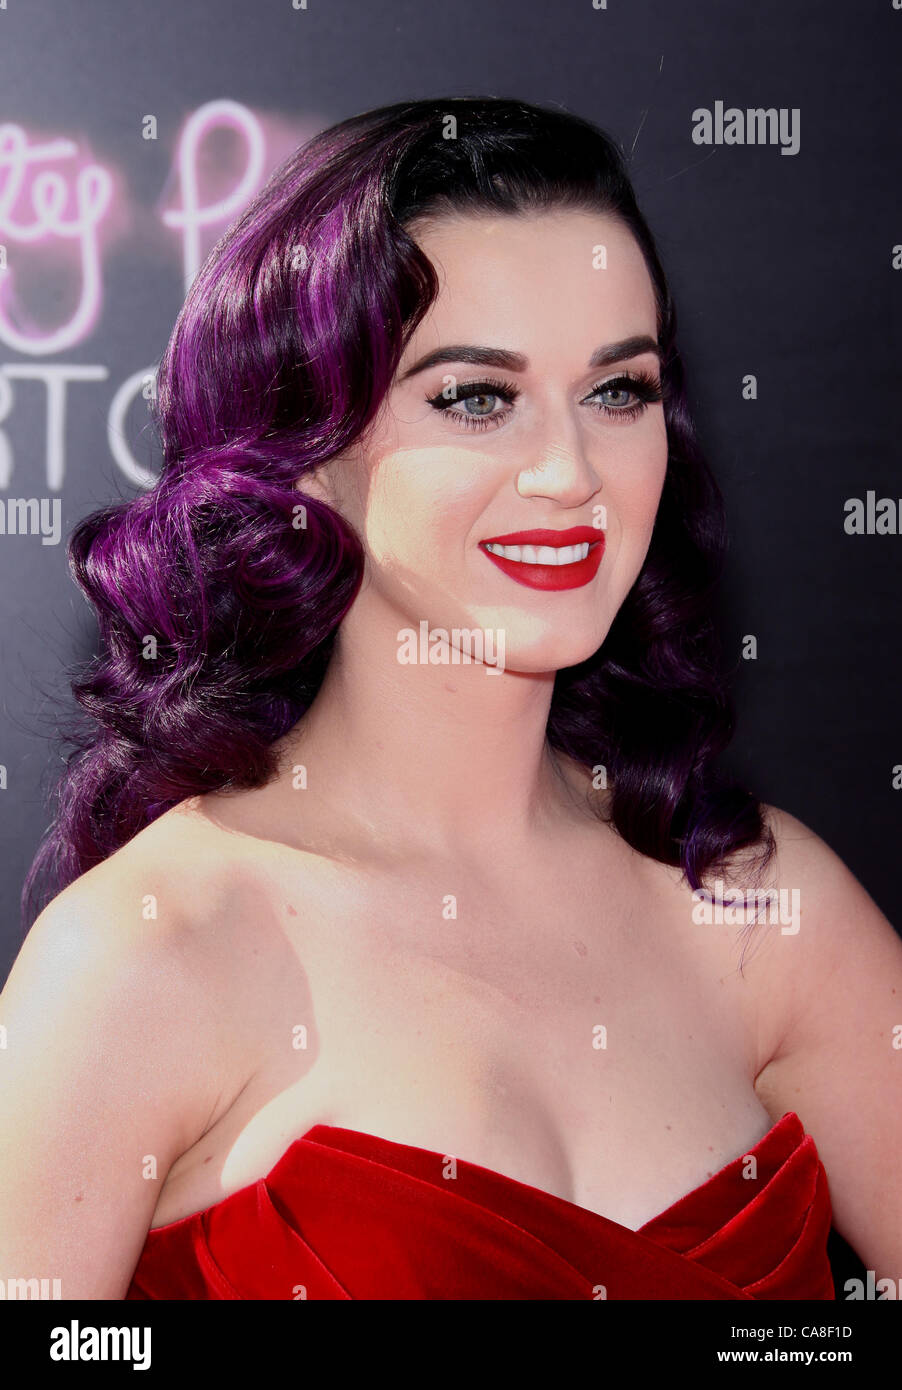 47e46029 KATY PERRY KATY PERRY: PART OF ME. LOS ANGELES PREMIERE HOLLYWOOD LOS  ANGELES CALIFORNIA USA 26 June 2012